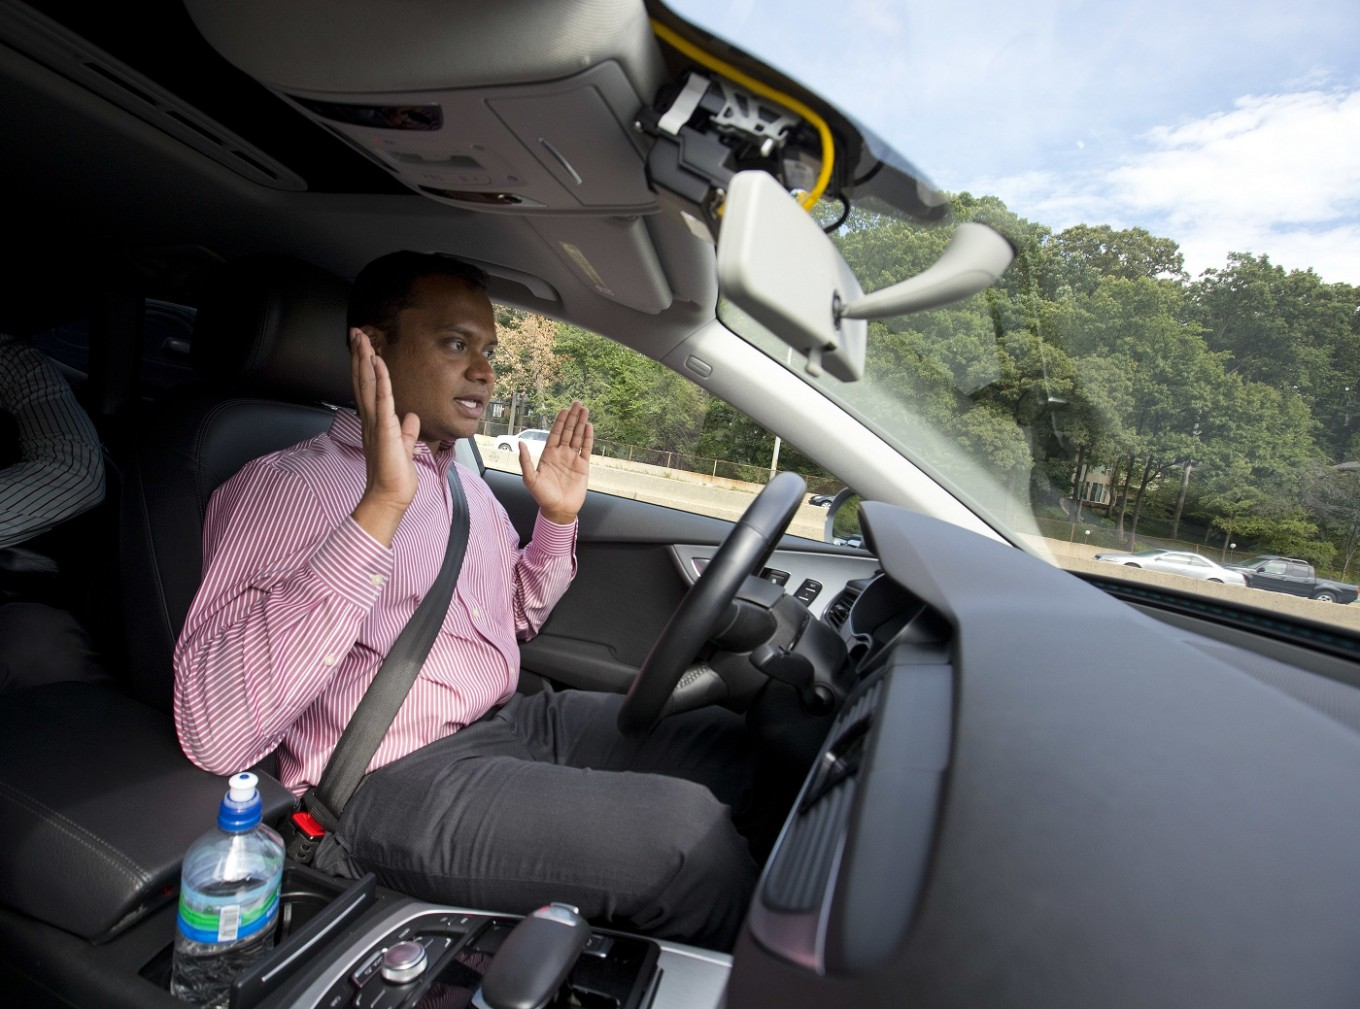 Delphi wants to deploy self-driving cars in 2022 - Science